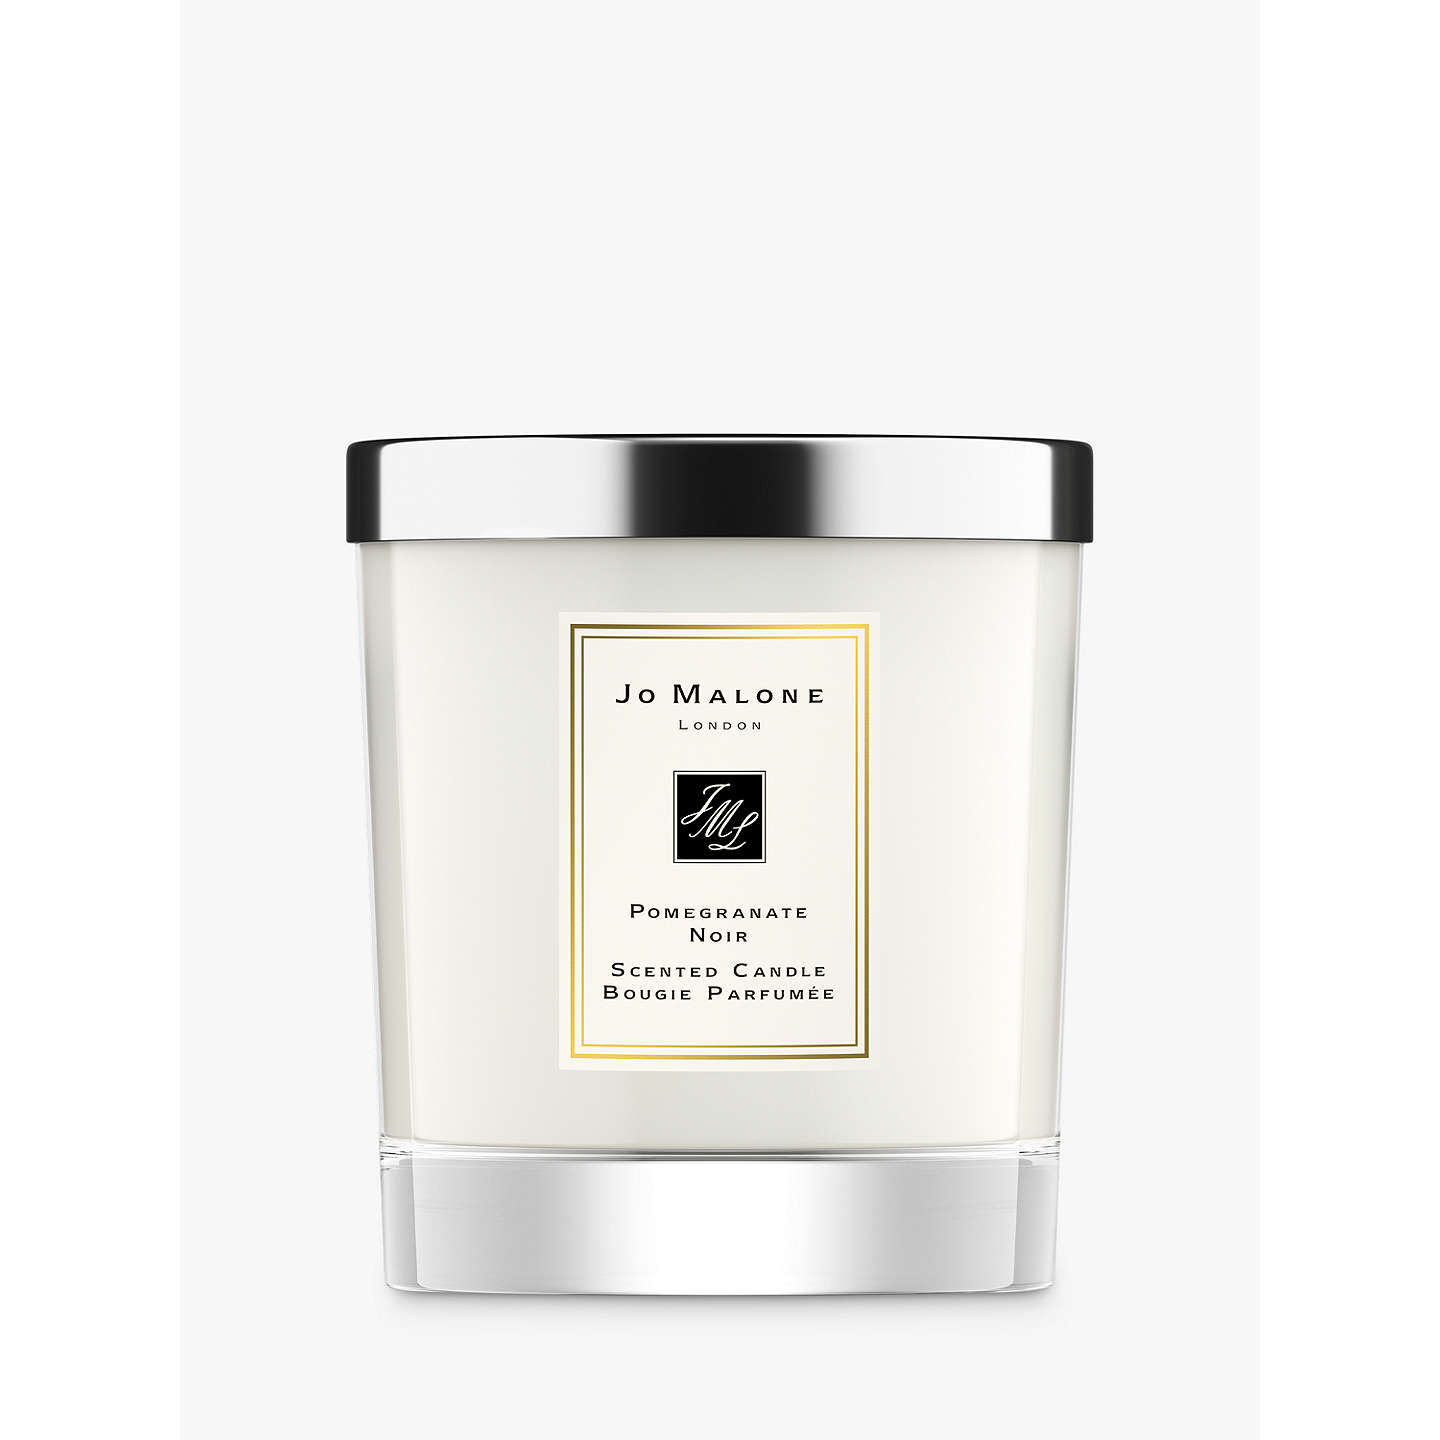 jo malone london pomegranate noir home candle 200g at. Black Bedroom Furniture Sets. Home Design Ideas